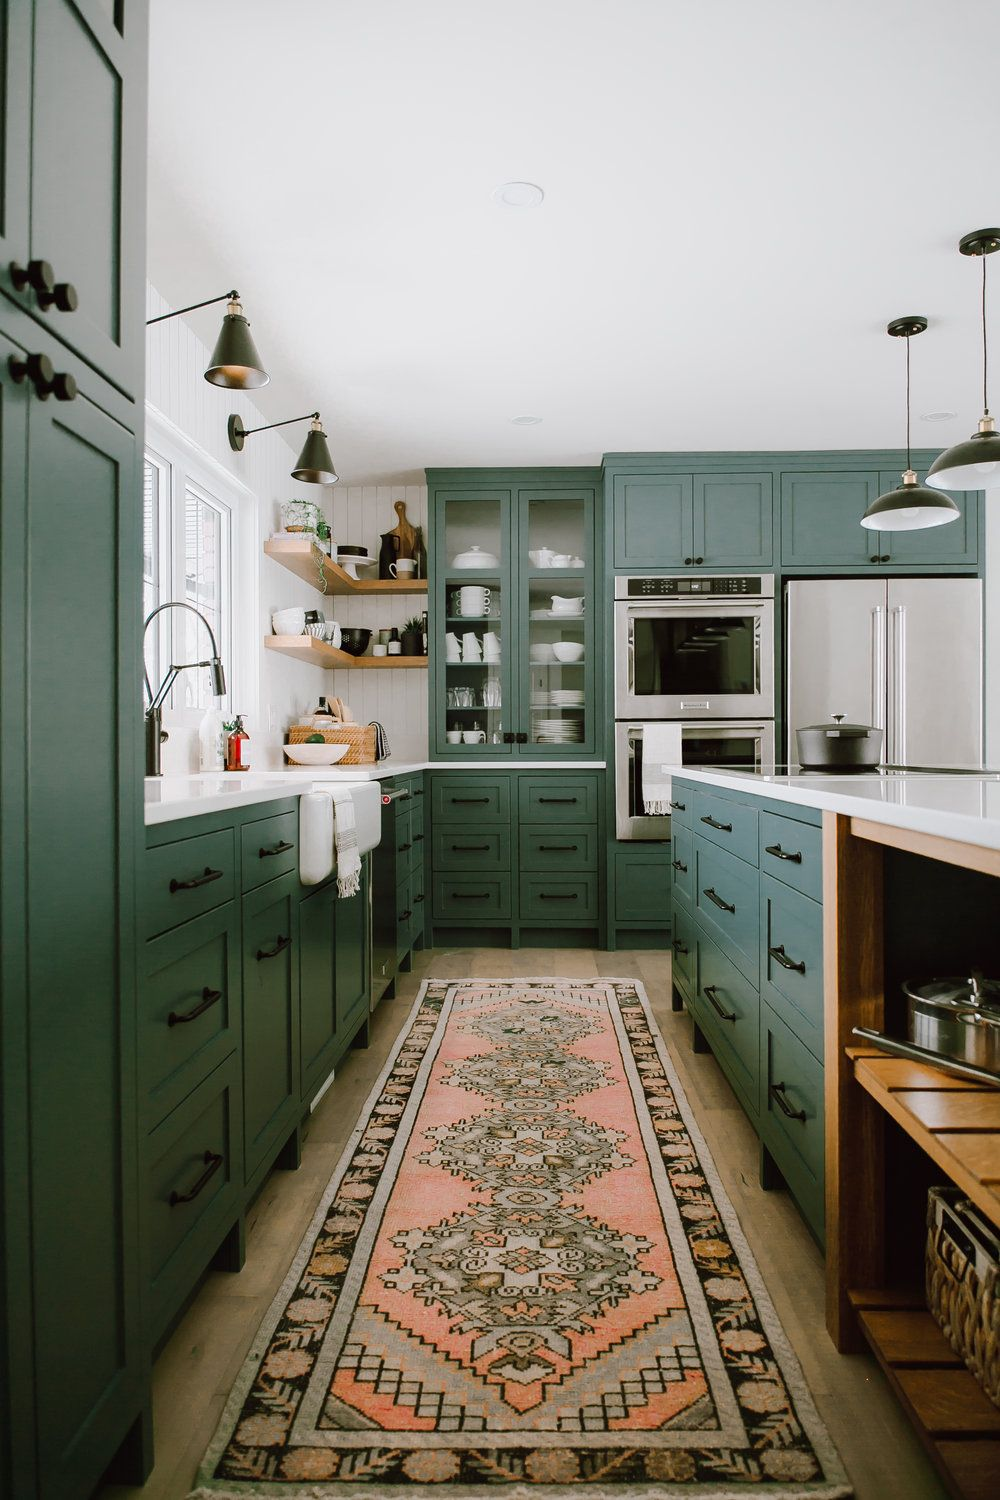 13 Envy Inducing Green Cabinets That Will Make Your Houseguests Jealous Hunker Green Cabinets Interior Design Kitchen Kitchen Design